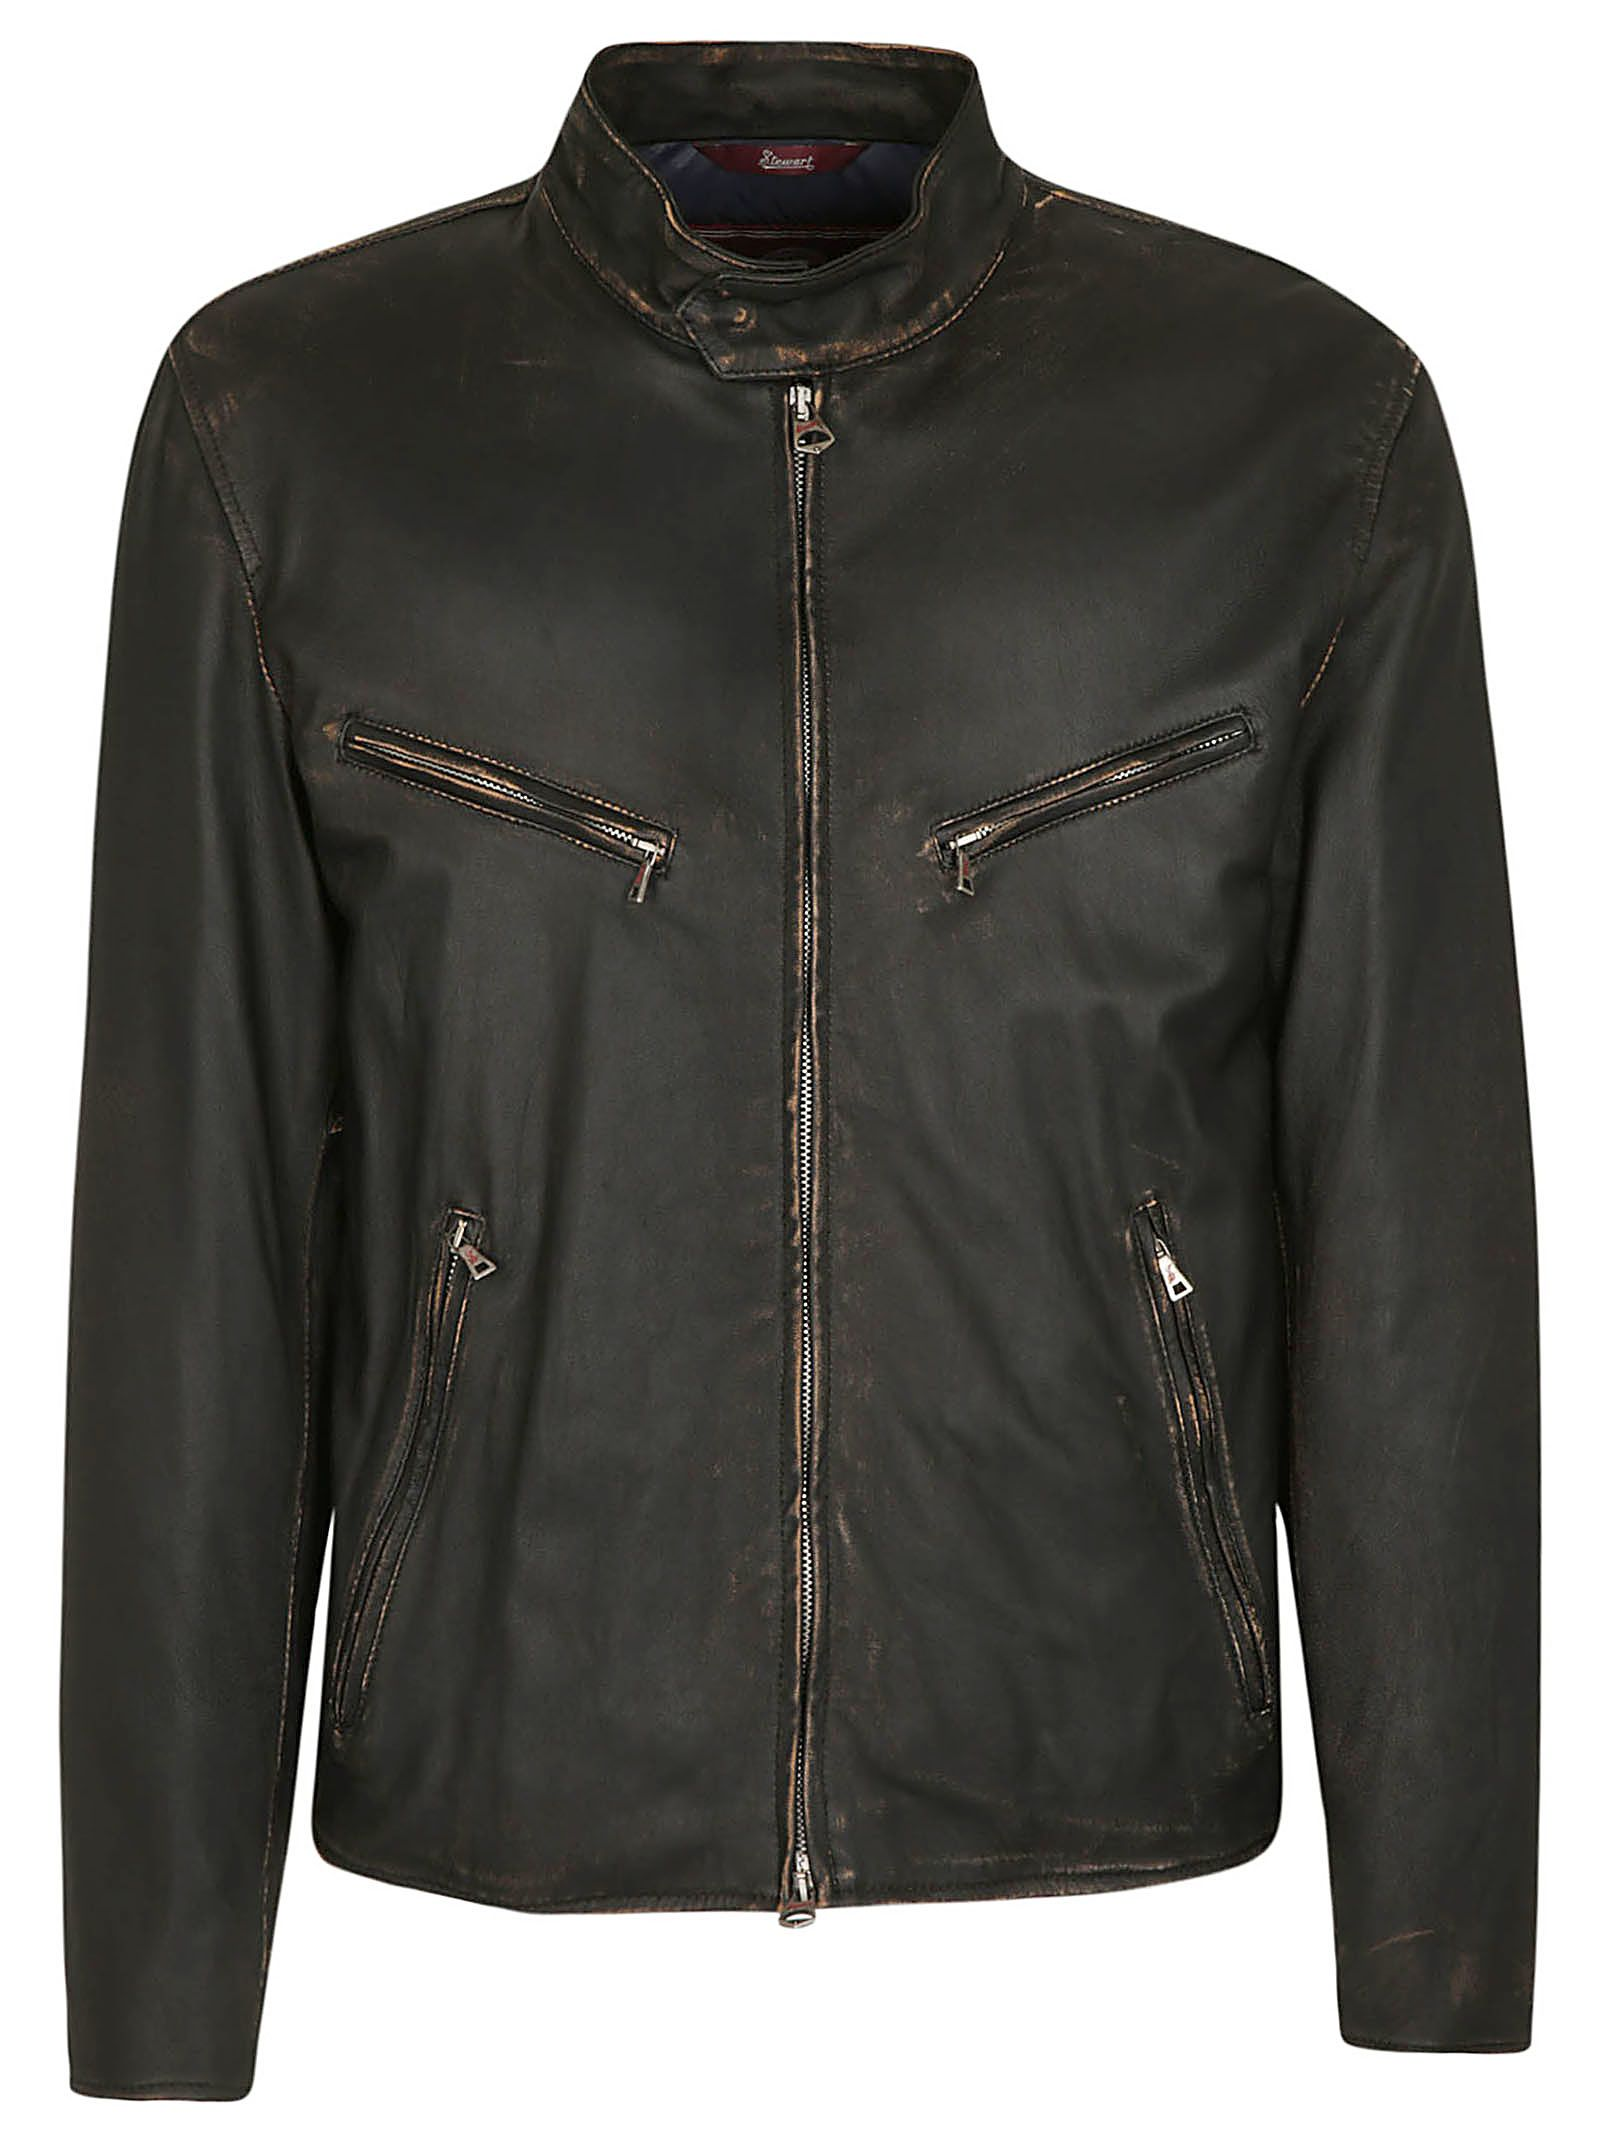 STEWART Zip Up Vintage Bomber in Black